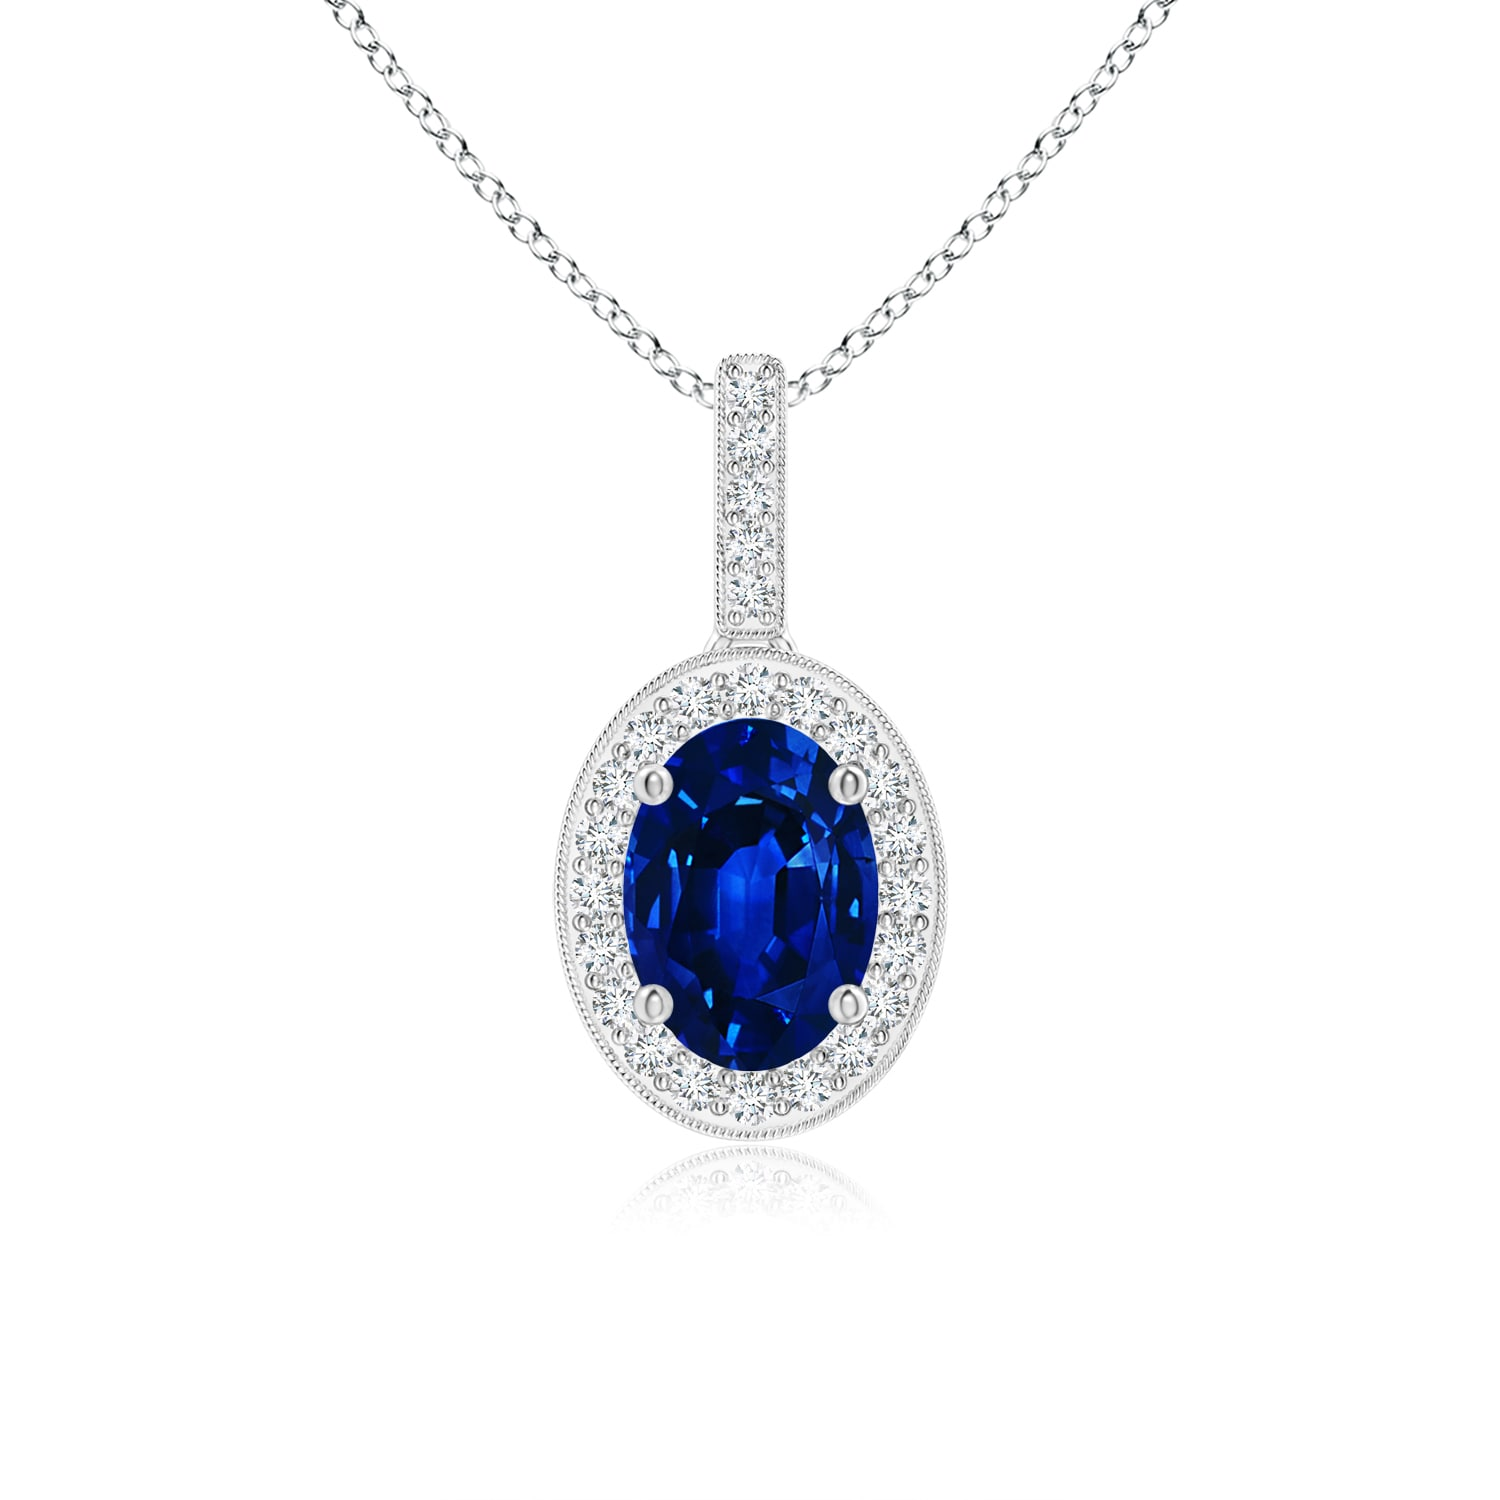 Vintage Oval Sapphire Pendant Necklace with Diamond Halo in Platinum (7x5mm Blue Sapphire) by Angara.com